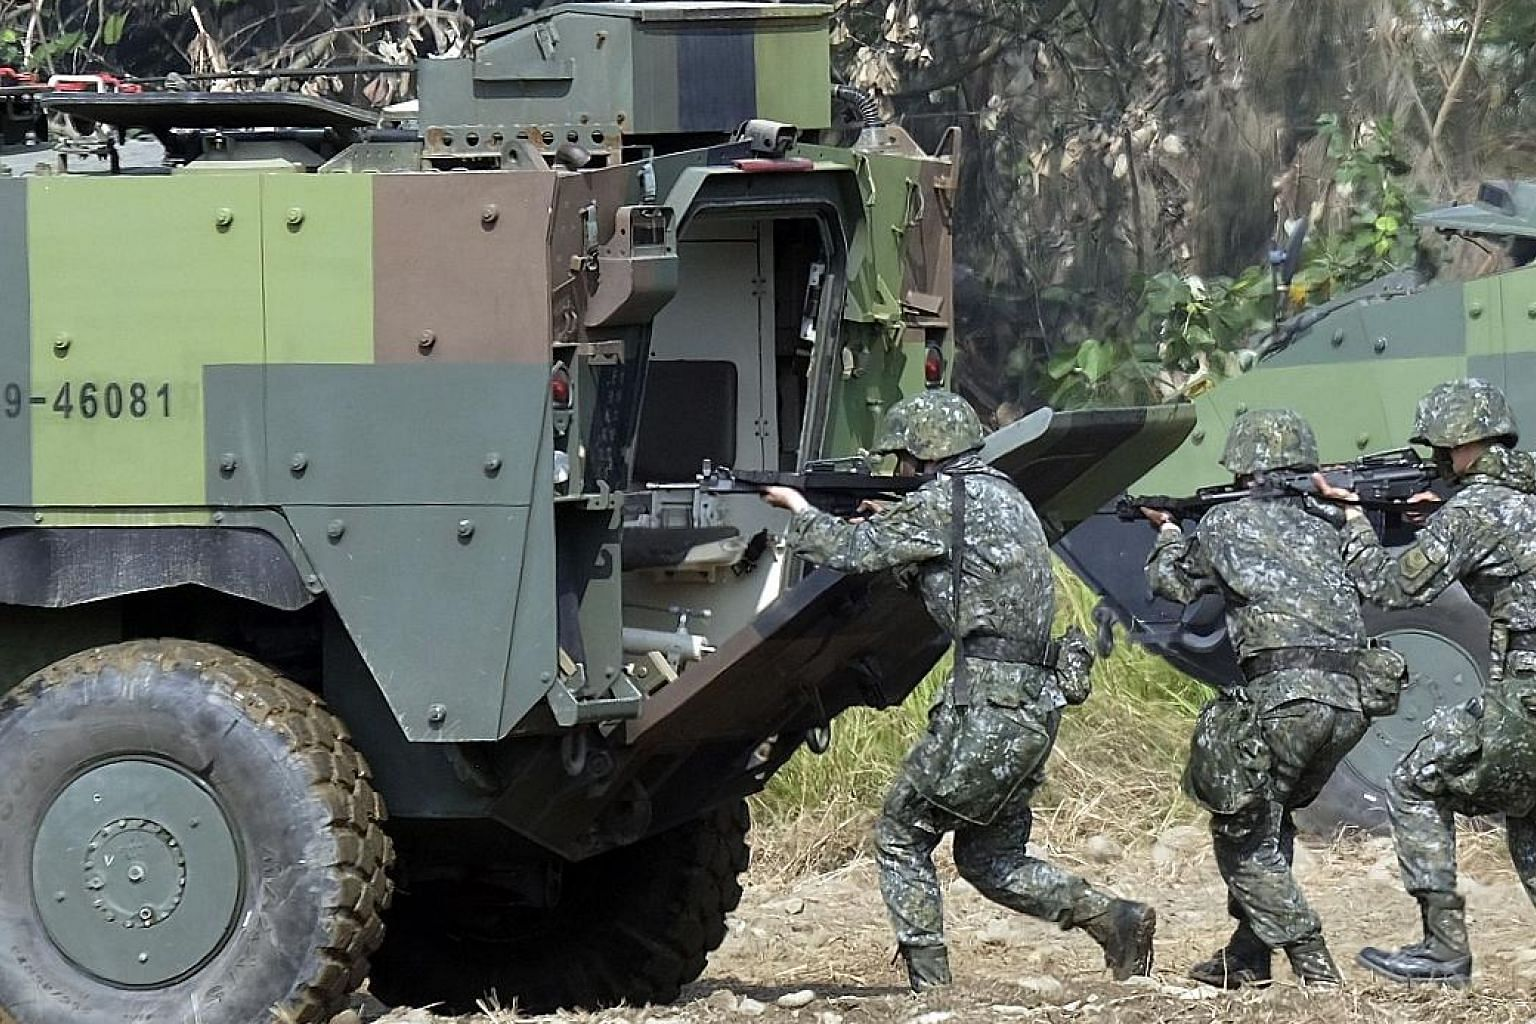 Taiwan special forces during an annual military drill in Taichung. Troops should hone their expertise in cyber warfare, say experts.